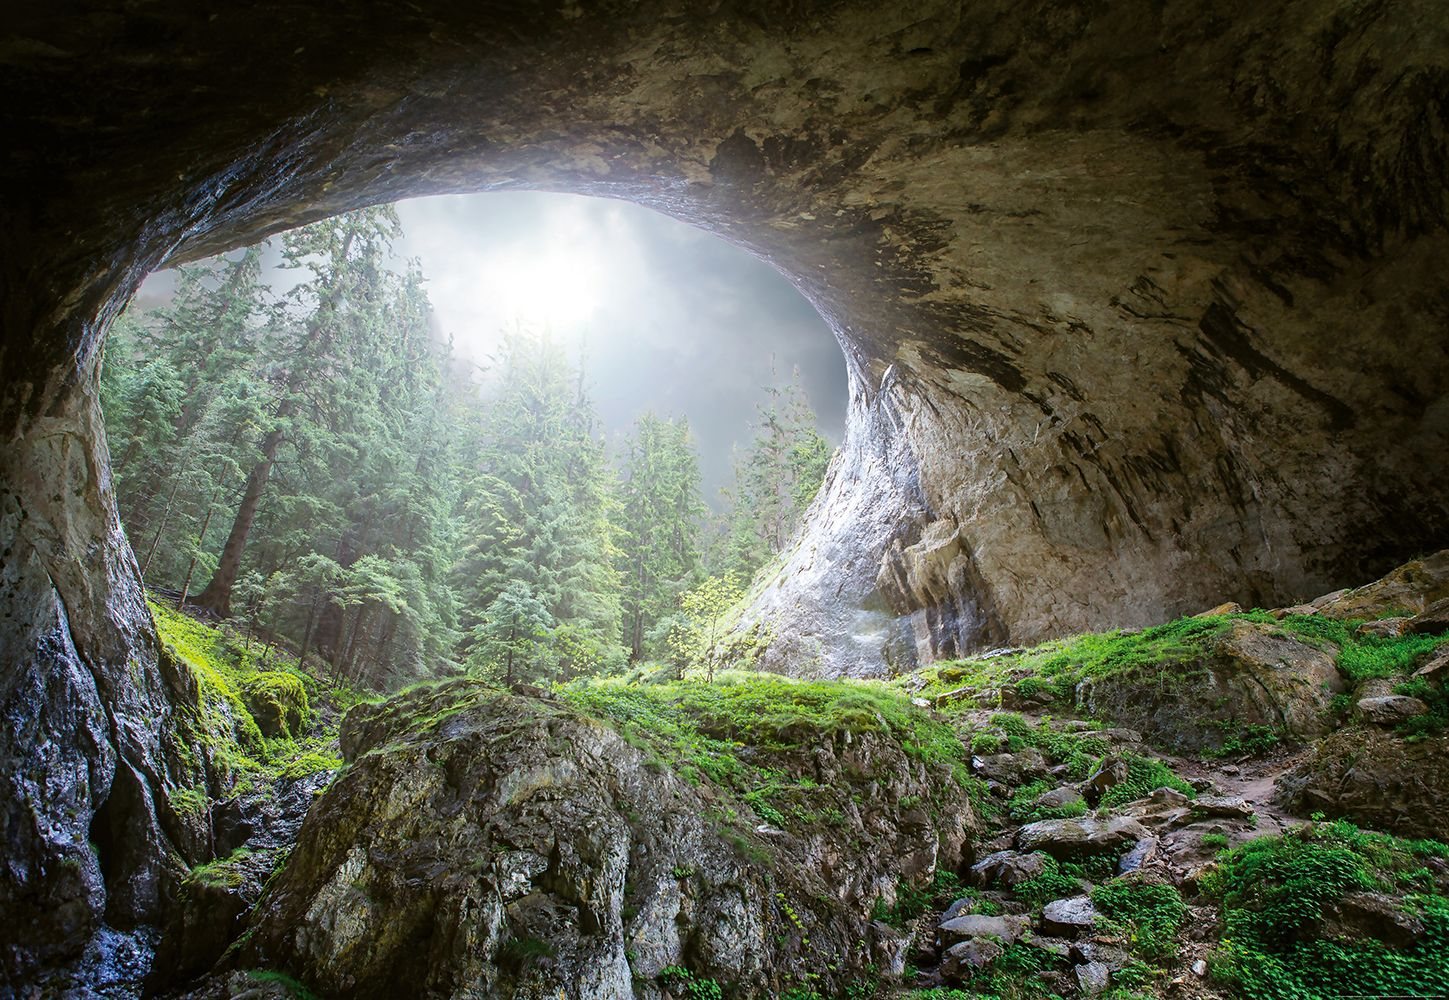 Valokuvatapetti Idealdecor Digital Cave In The Forest 4-osaa 5078-4V-1 254x368 cm